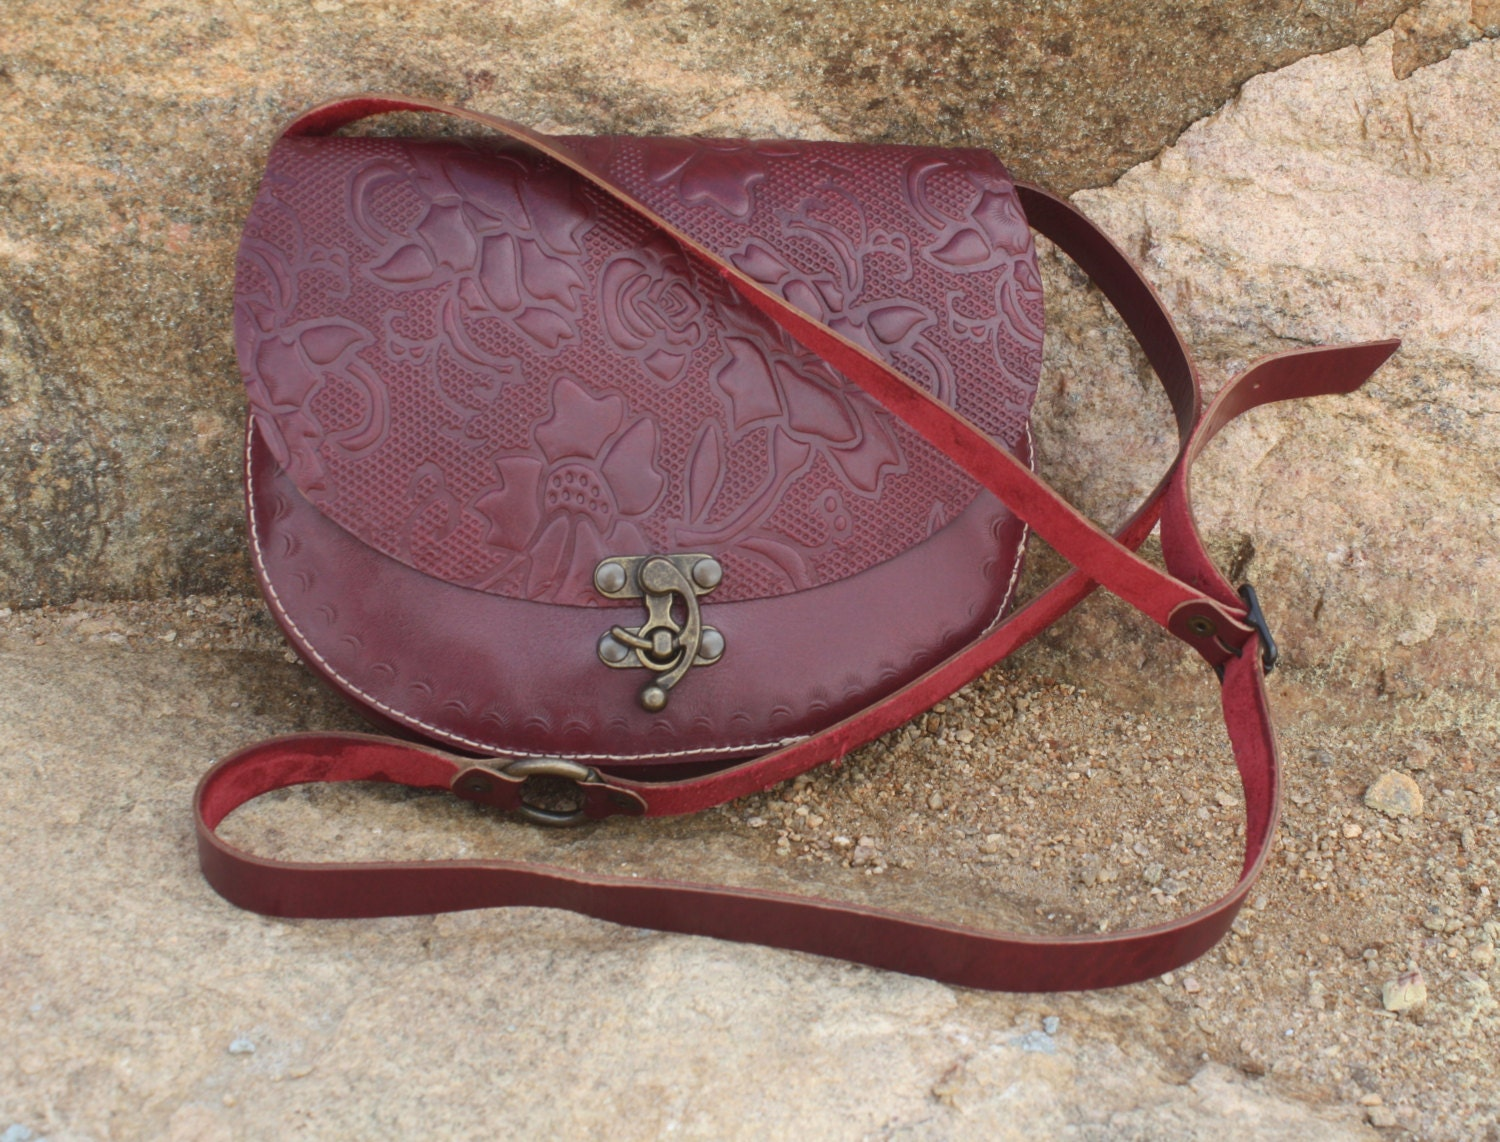 Red Leather Floral Embossed Handbag/Purse/Crossbody Bag